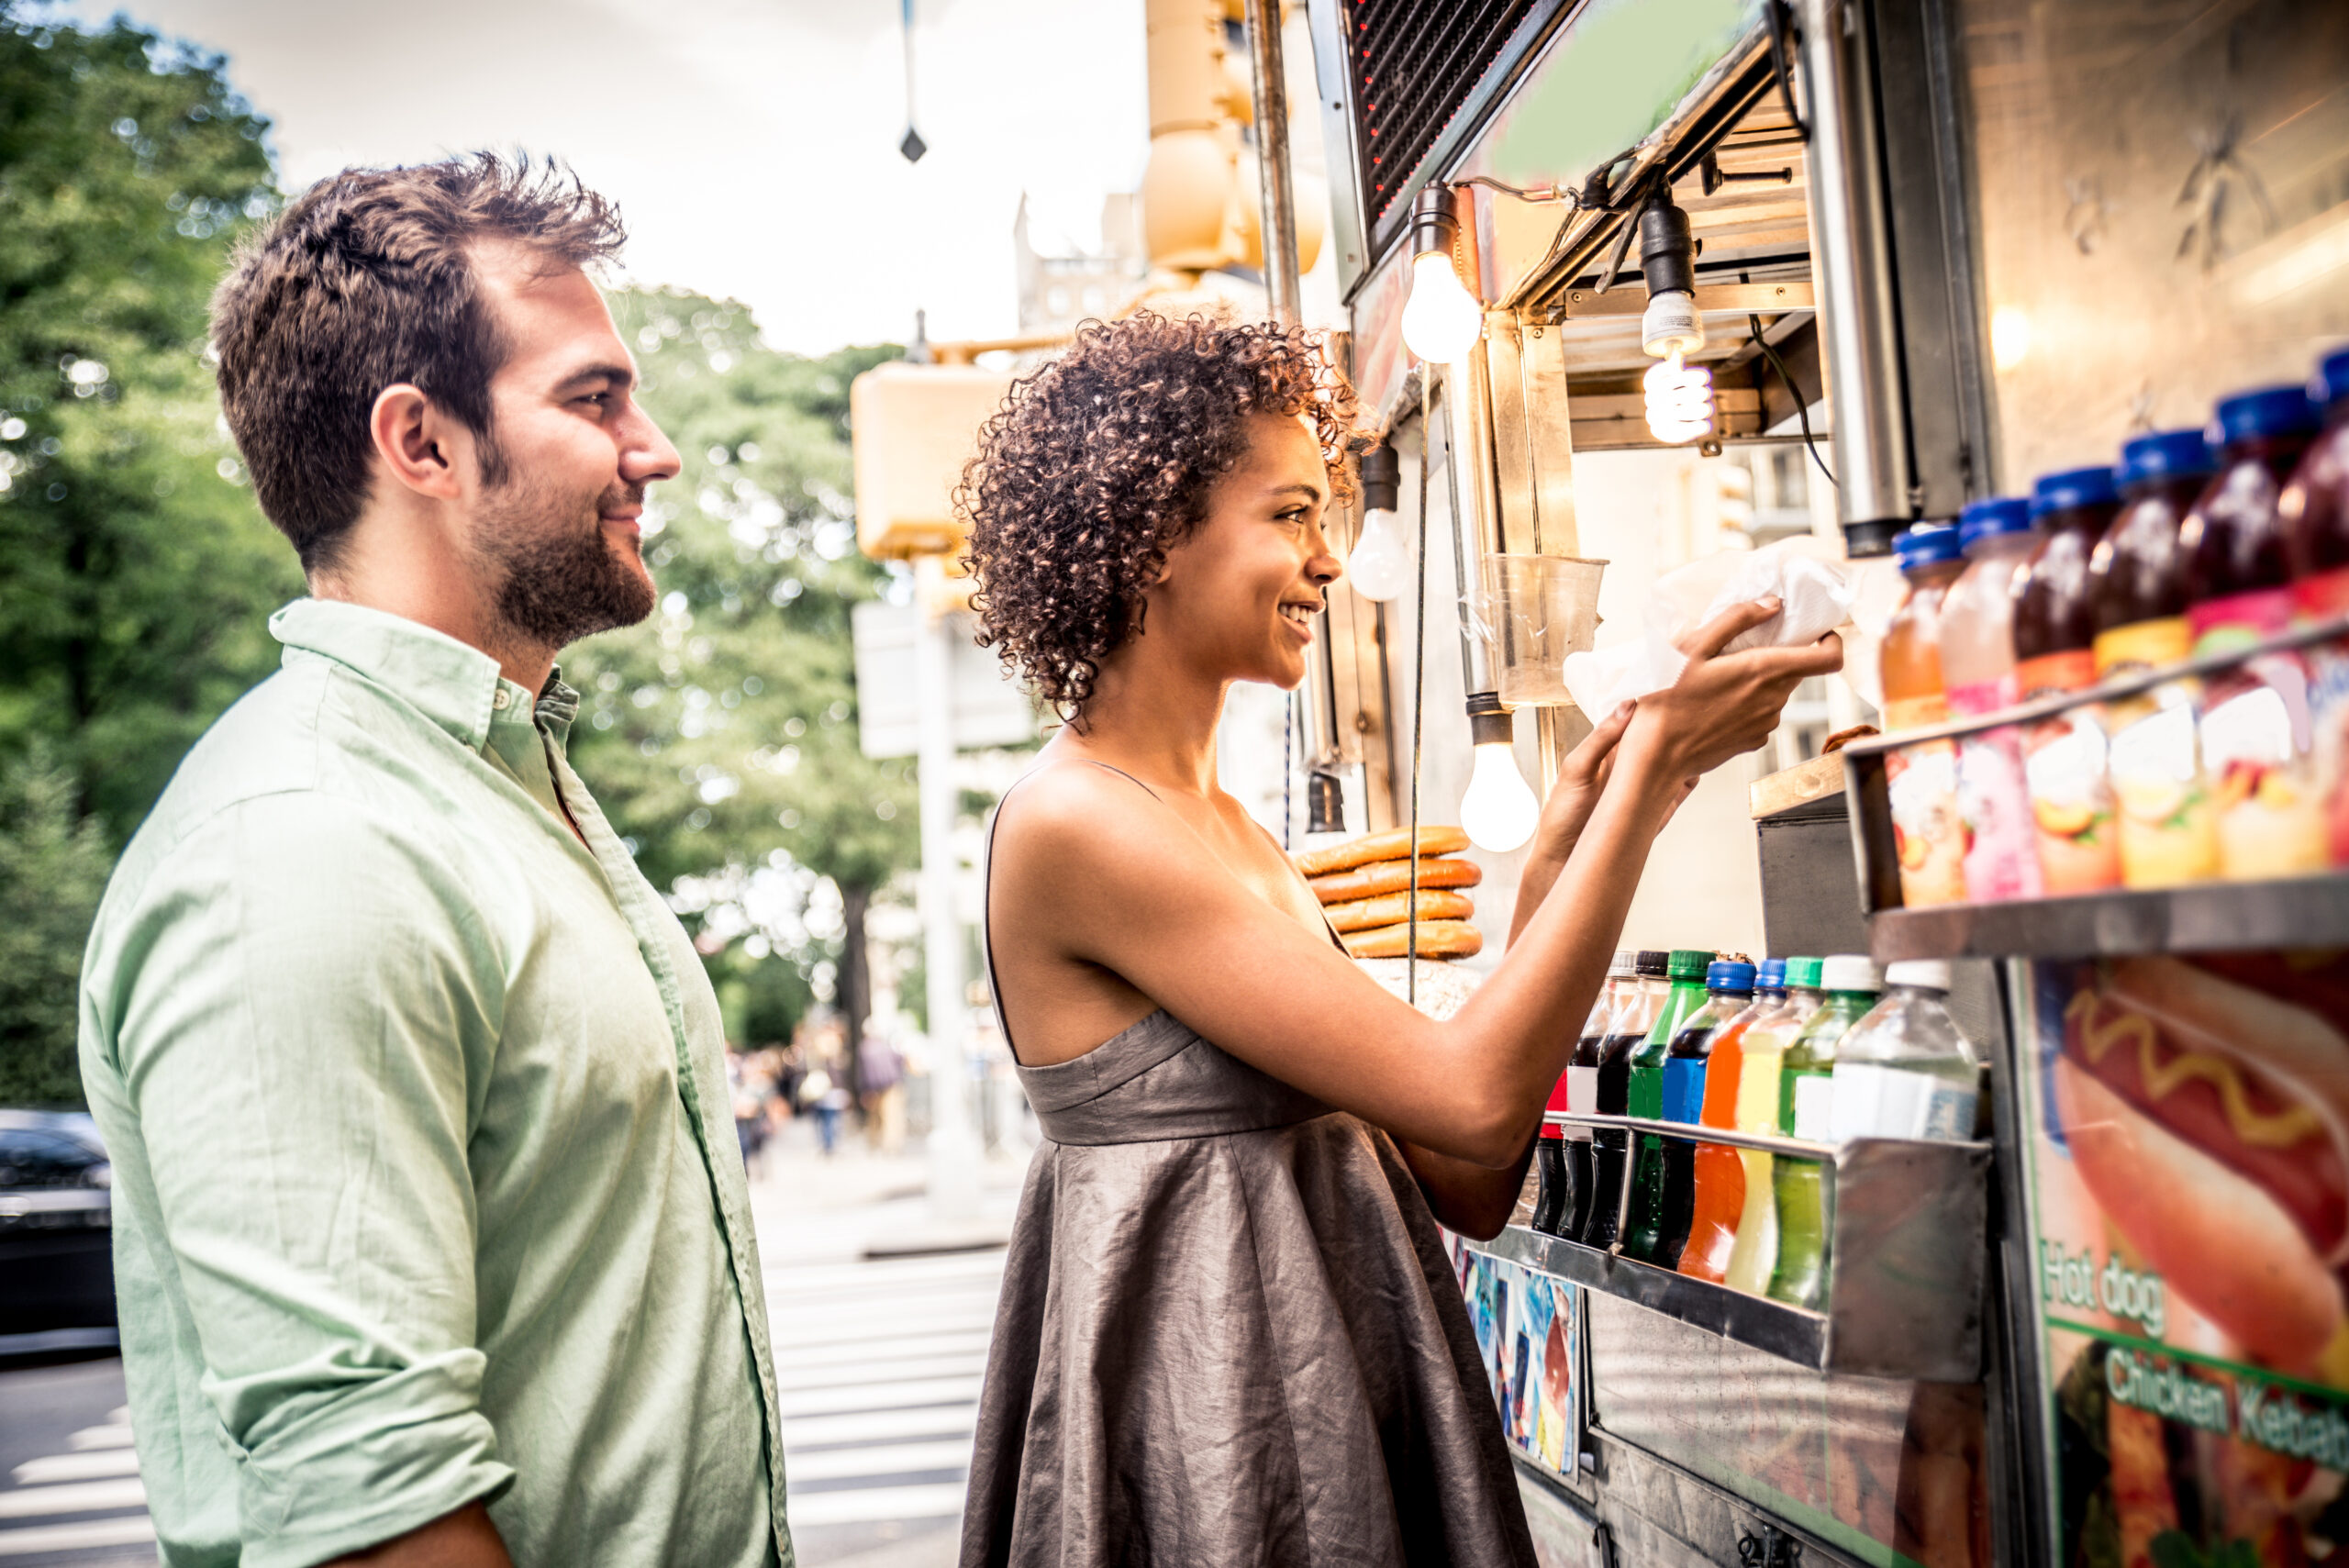 couple-at-food-truck-nashville-tennessee-nodat-hot-offers